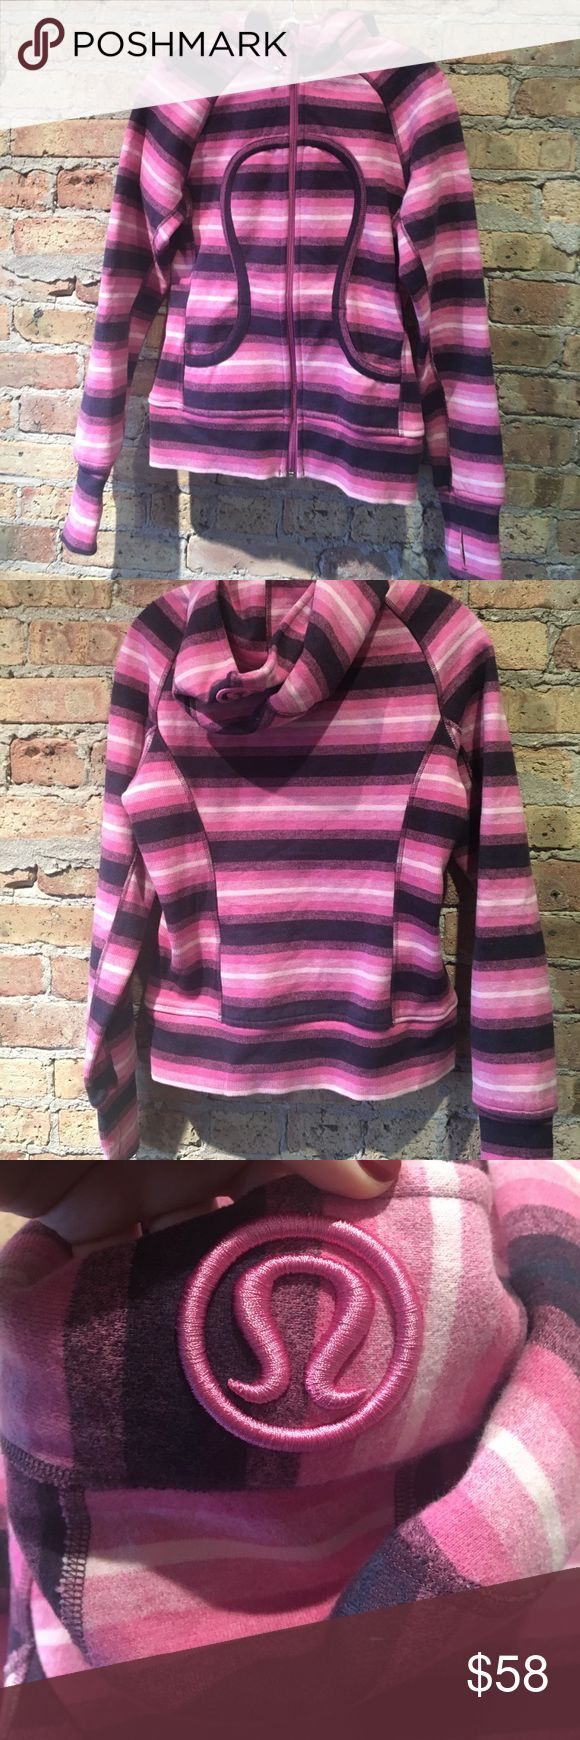 Lululemon pink/purple/white zip up hoodie size 6 Lululemon pink/purple/white striped zip up hoodie size 6. Preloved in great condition. 55497 lululemon athletica Jackets & Coats